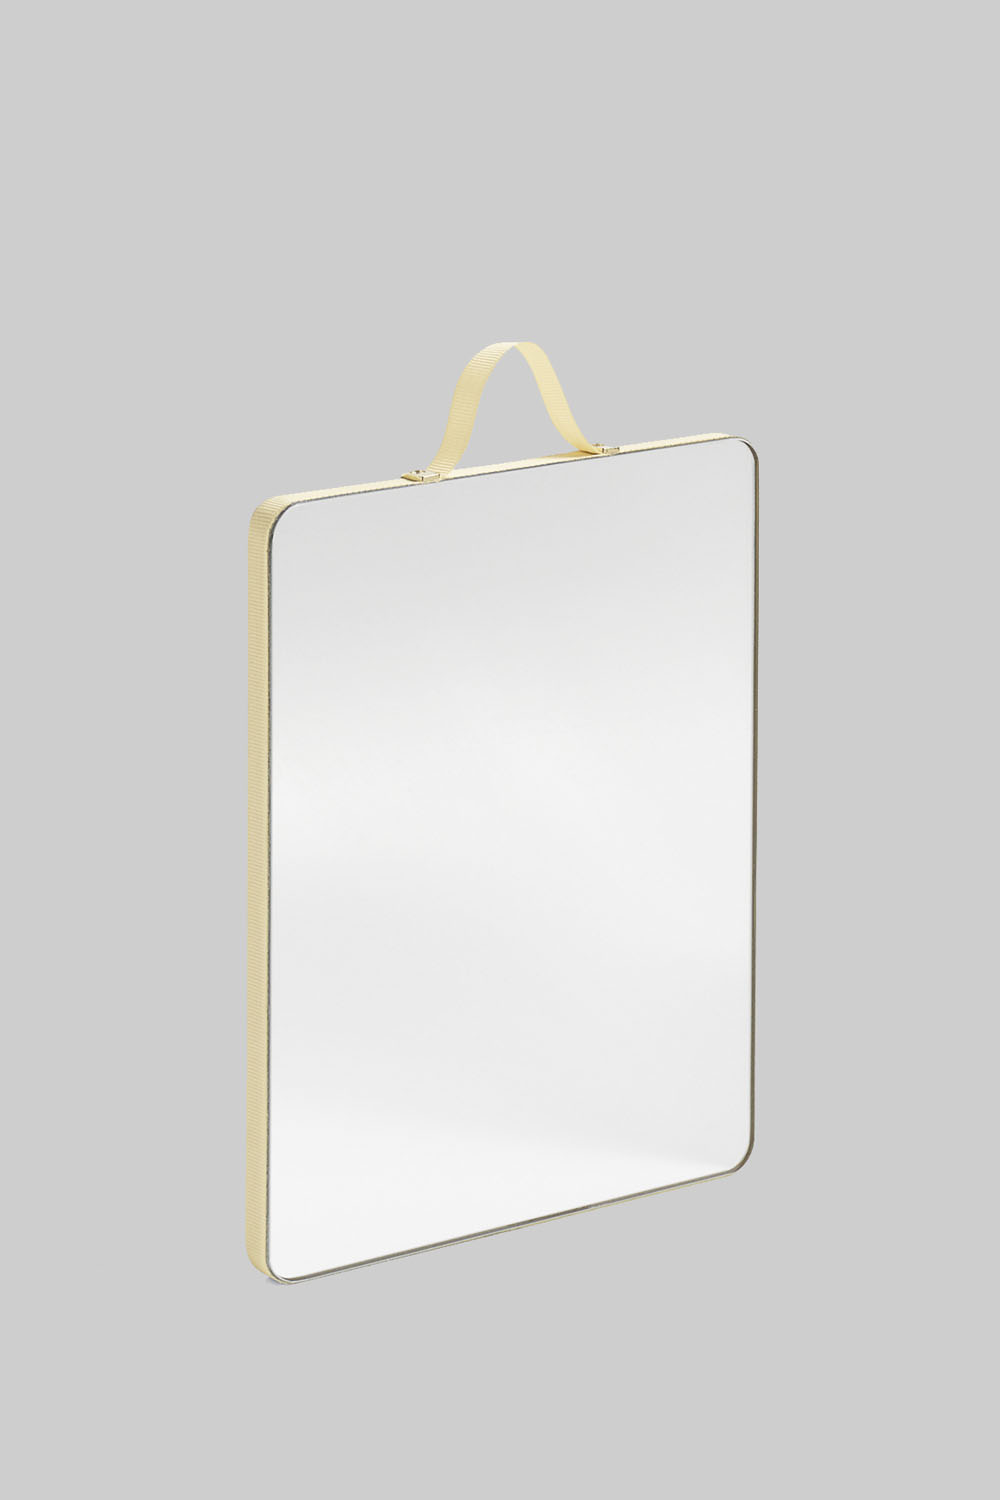 Ruban Mirror Square Yellow